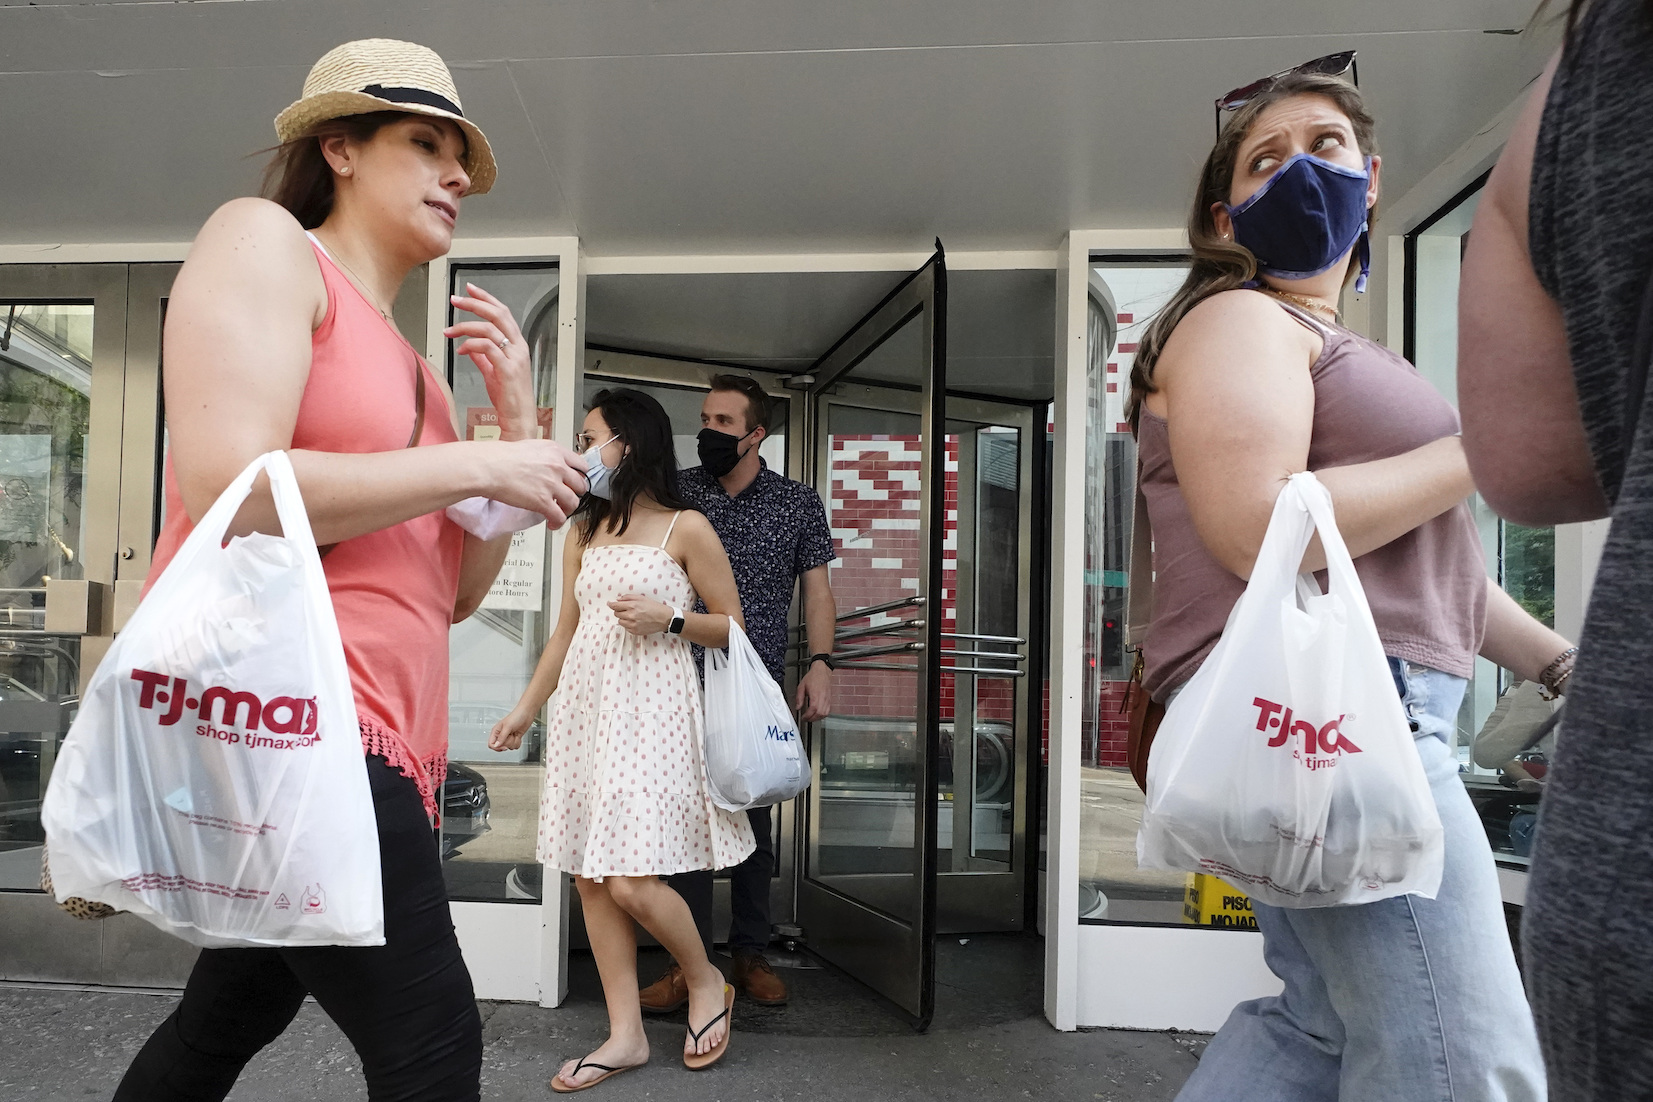 According to data from commerce media platform provider Criteo, U.S. in-store sales transactions increased 8 percent in May 2021 over February 2020, the last month before the Covid-19 pandemic caused non-essential retail stores to shutter worldwide for months at a time amid government lockdowns.